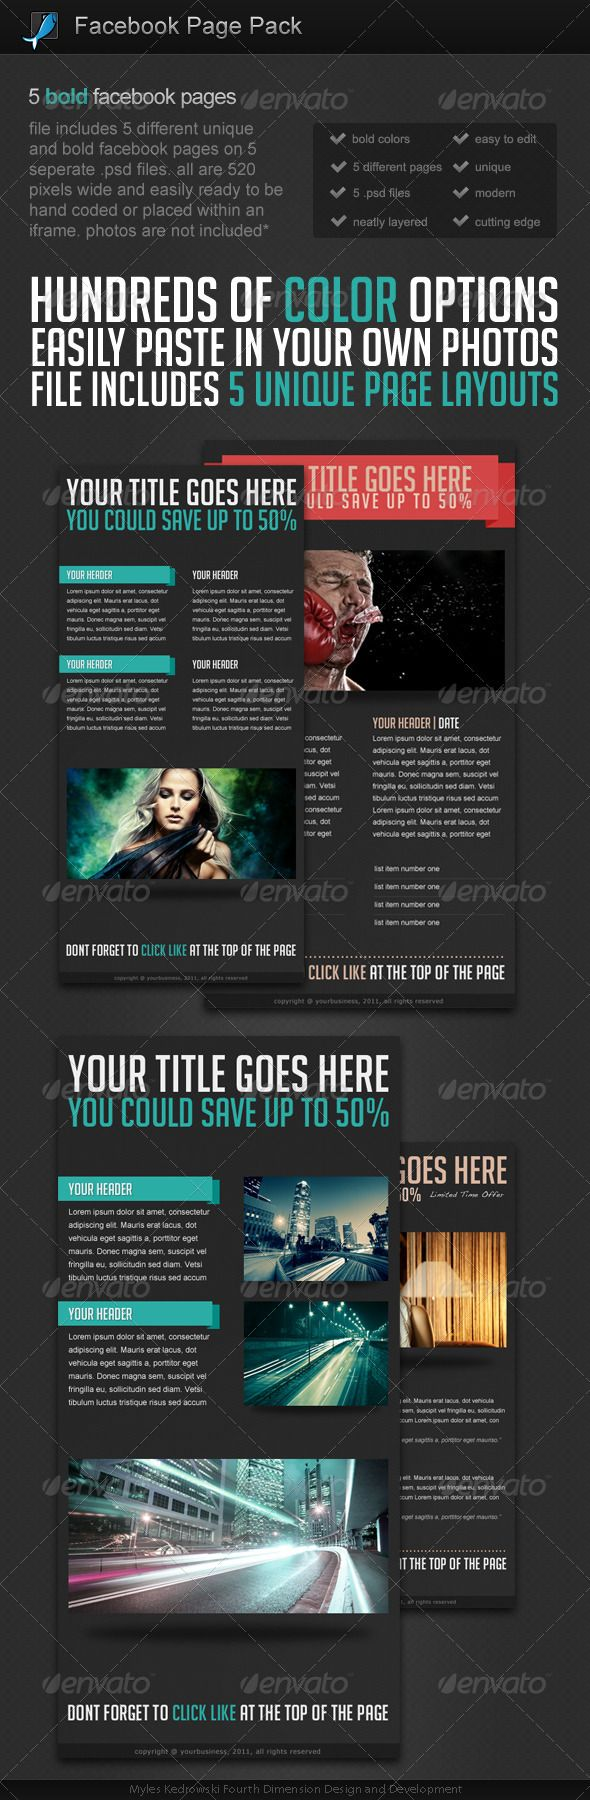 Facebook Page Pack  #GraphicRiver         File includes five different facebook pages on 5 different .psd files. dimensions are 520 pixels wide with varying heights perfect for fitting into an iframe or coding by hand. Photos are not included, but the photos are really easy to swap in and out and all the text, colors, and sizes are easy to modify.     Created: 20October11 GraphicsFilesIncluded: PhotoshopPSD Layered: Yes MinimumAdobeCSVersion: CS PixelDimensions: 520x1100 Tags: bold #colorful…